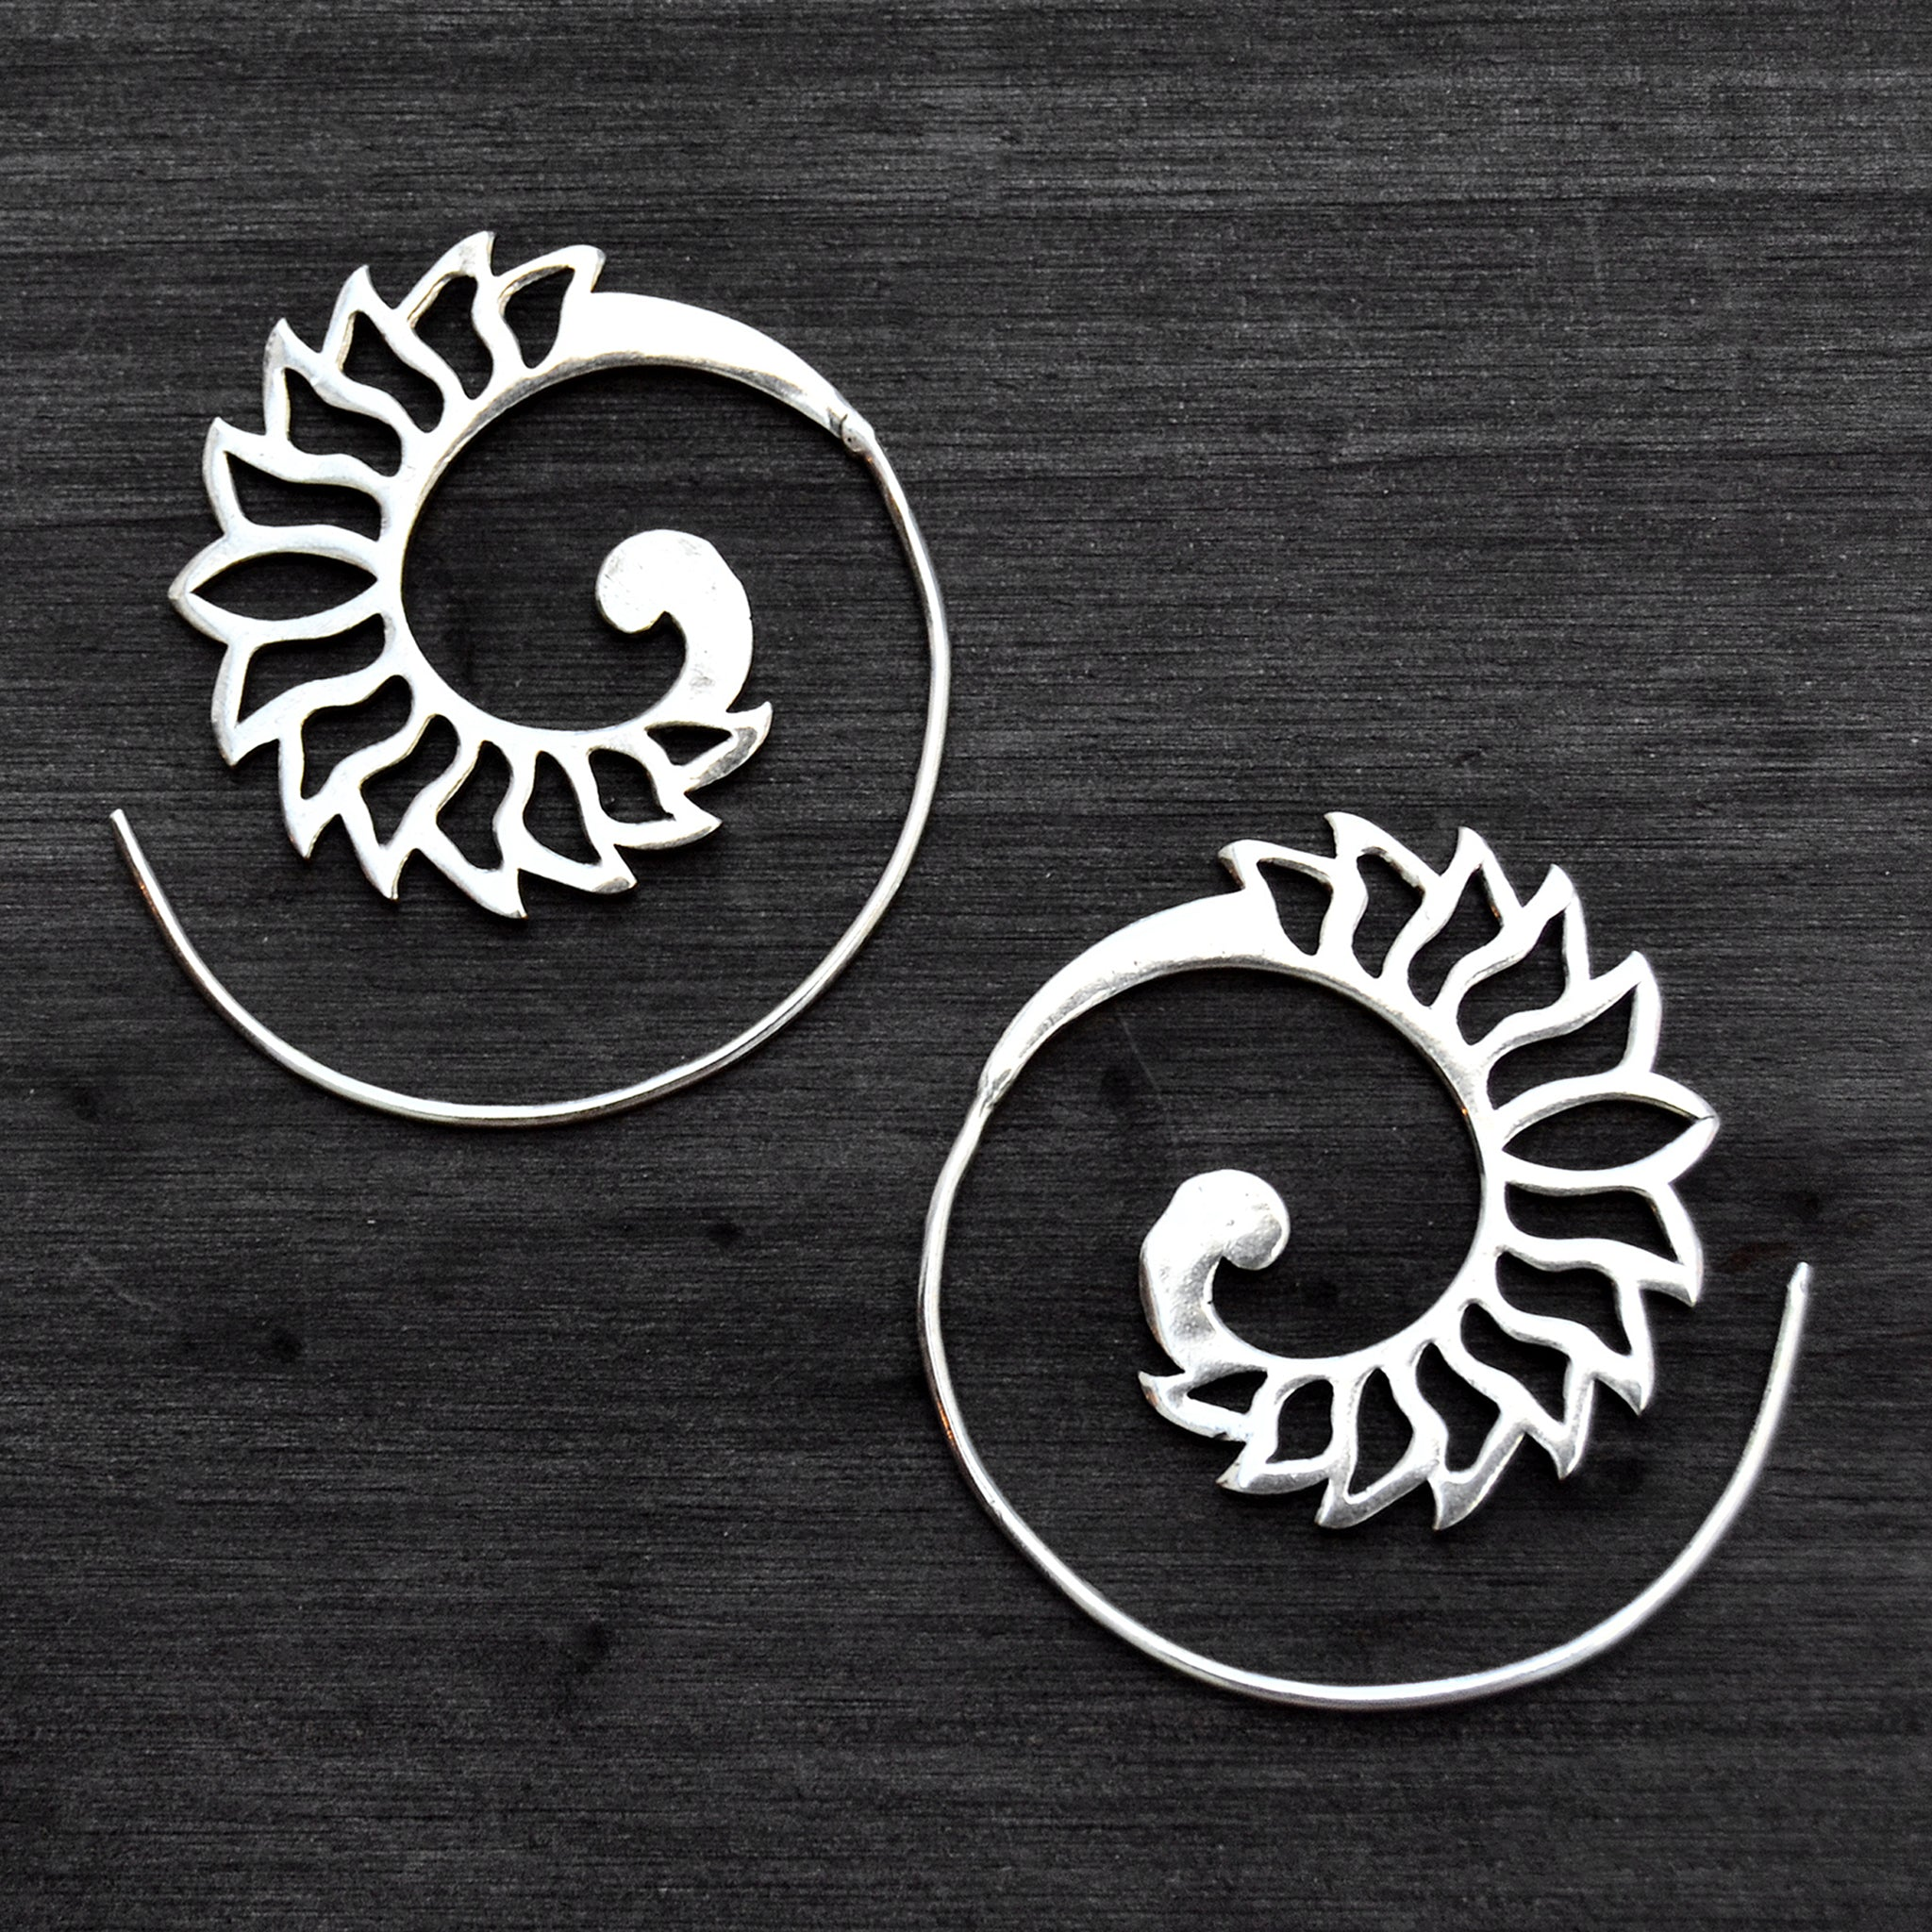 Spiral festival earrings